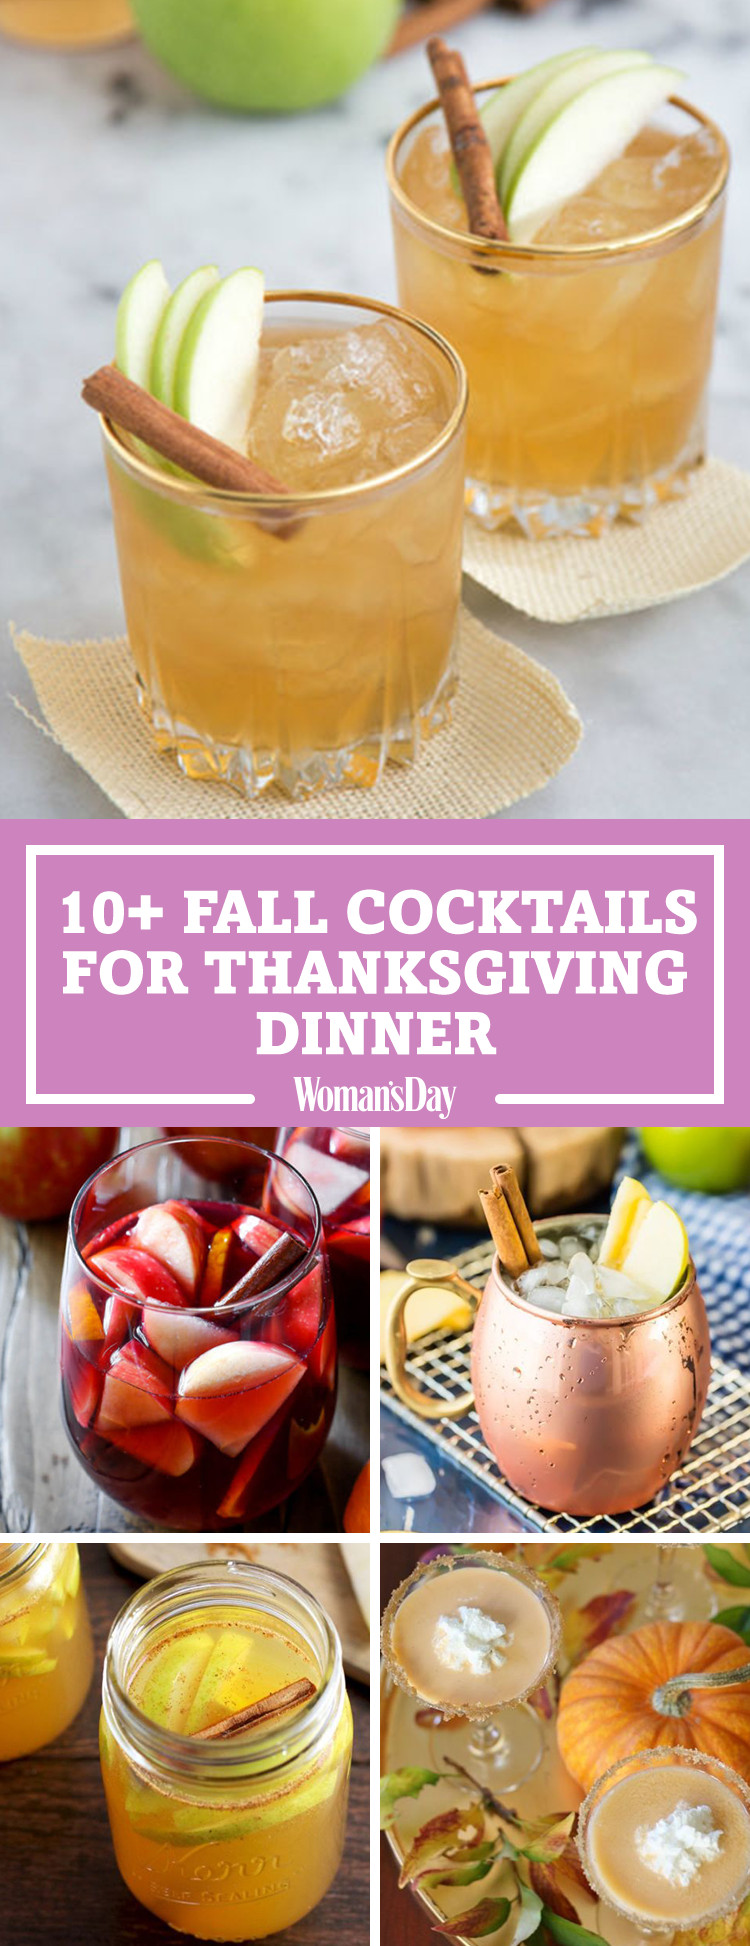 Drinks For Thanksgiving  14 Best Fall Cocktails for Thanksgiving Recipes for Easy